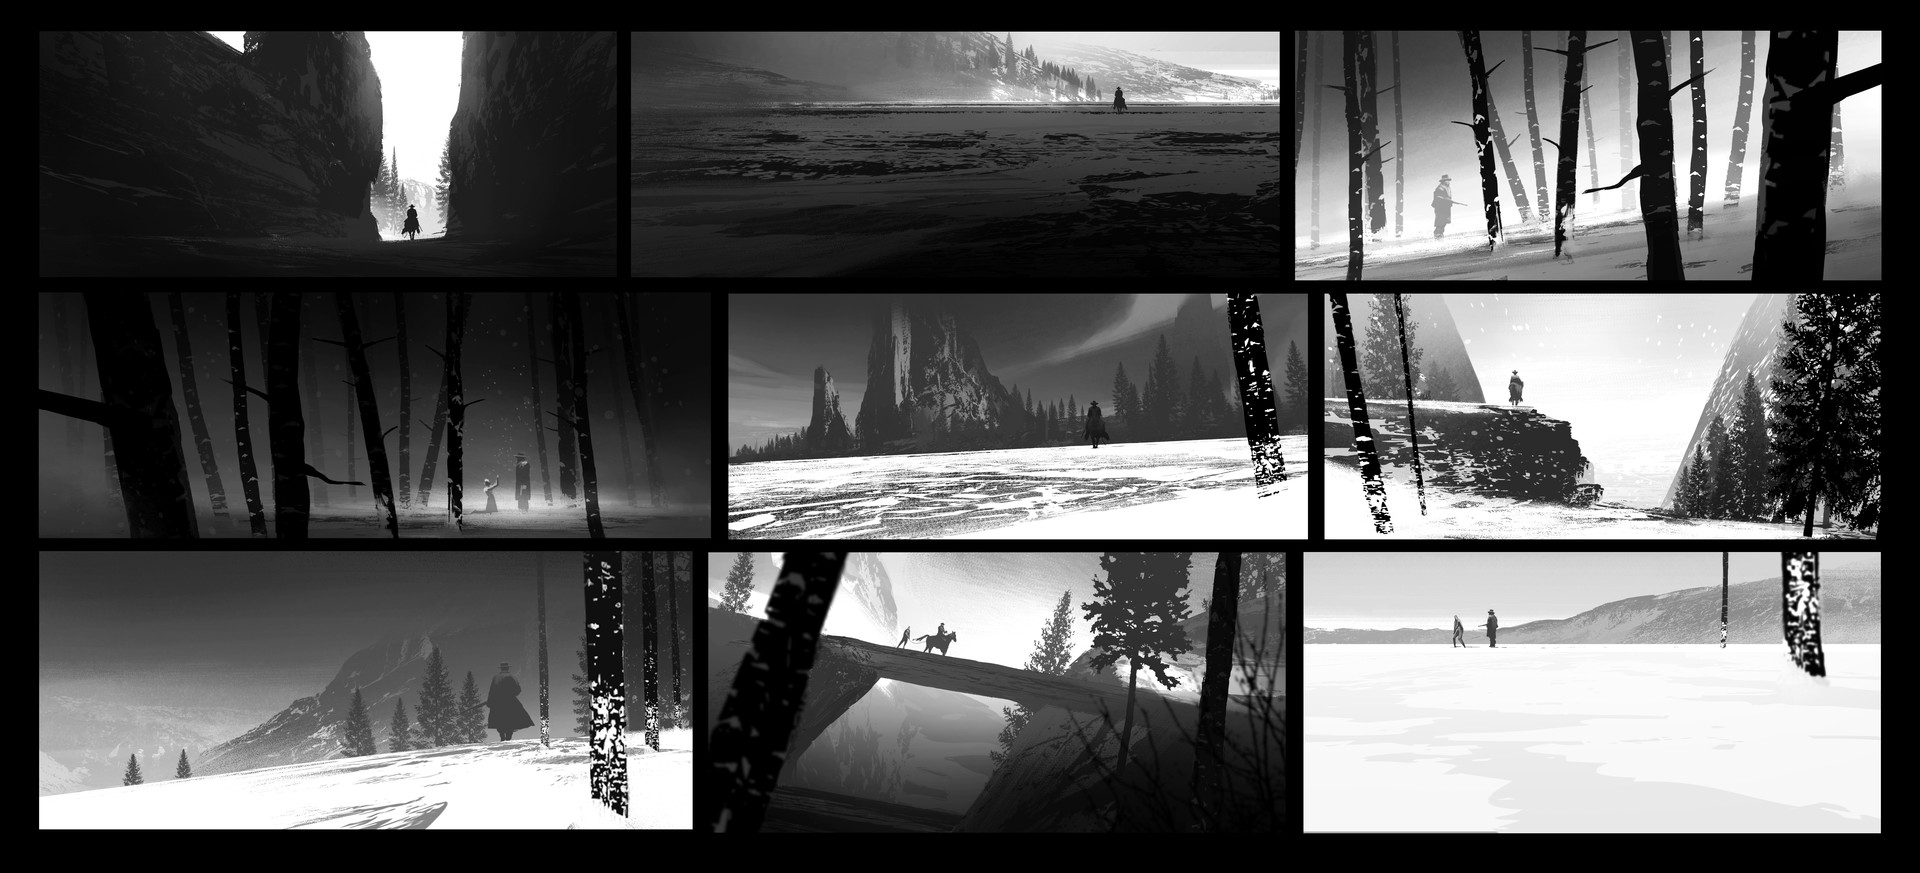 Dave paget custom shapes thumbnails